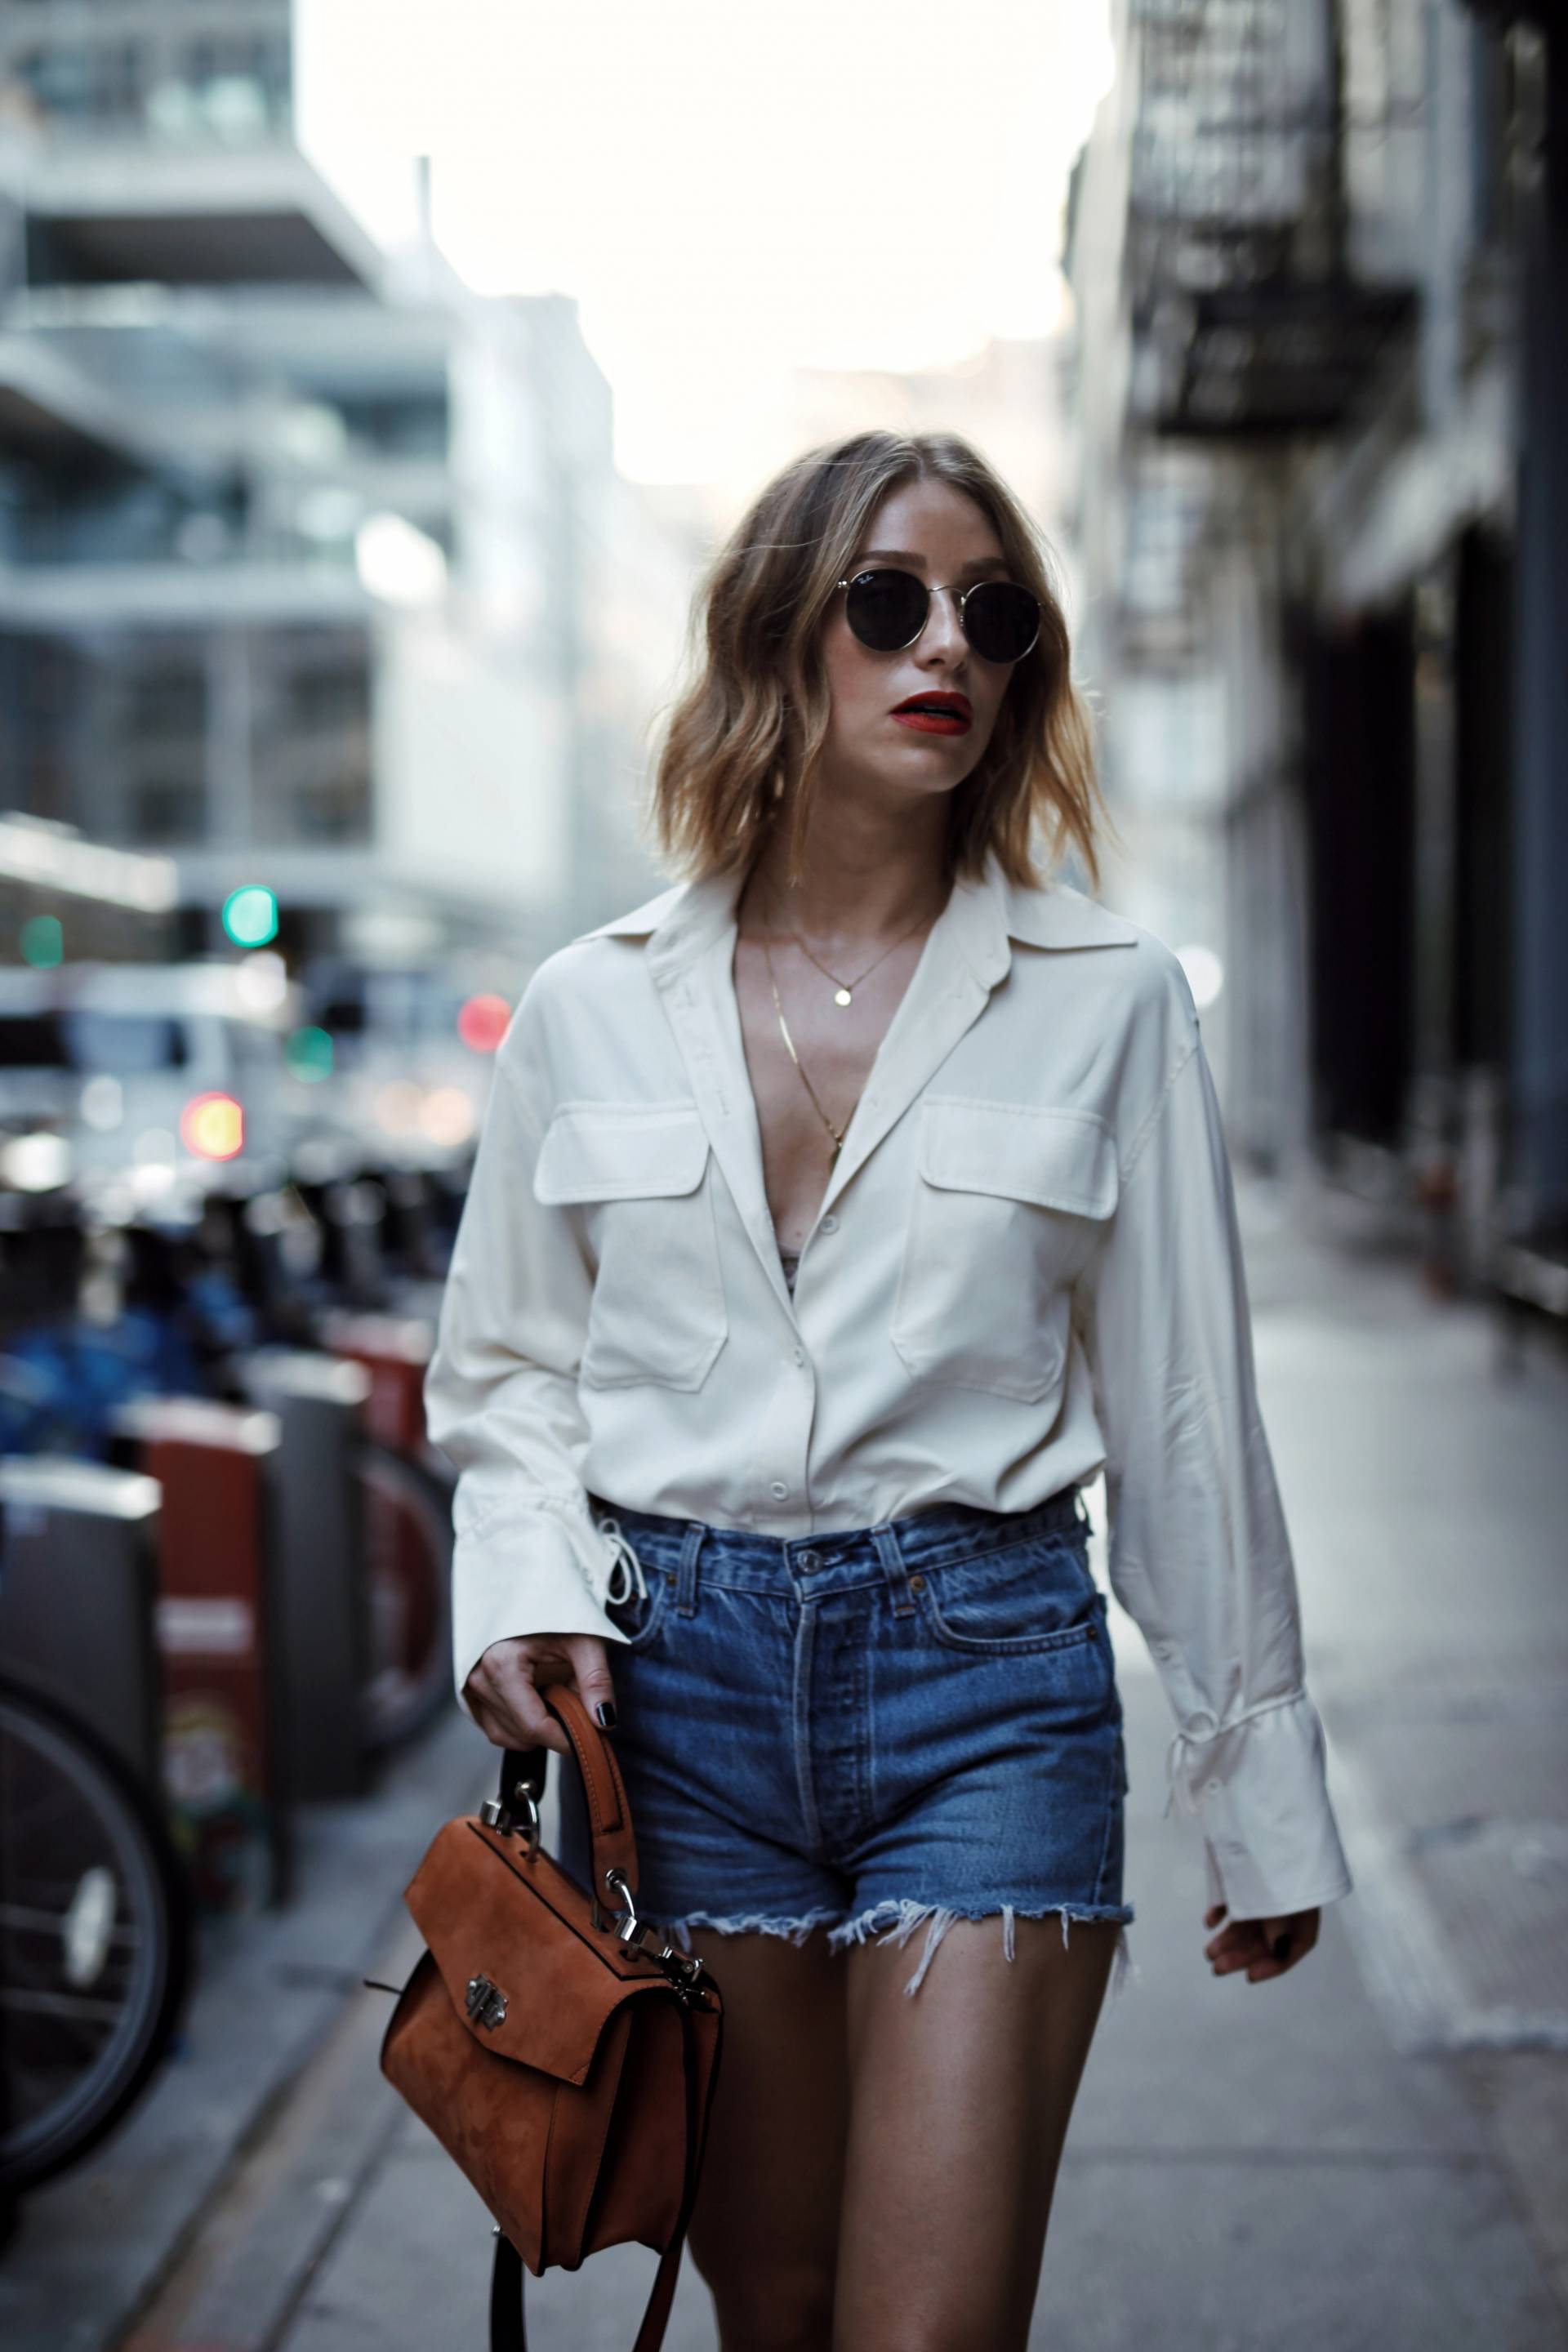 Style and beauty blogger Jill Lansky of the August Diaries on how to dress outside your comfort zone in Aritzia blouse, levi's shorts, proenza schouler hava bag